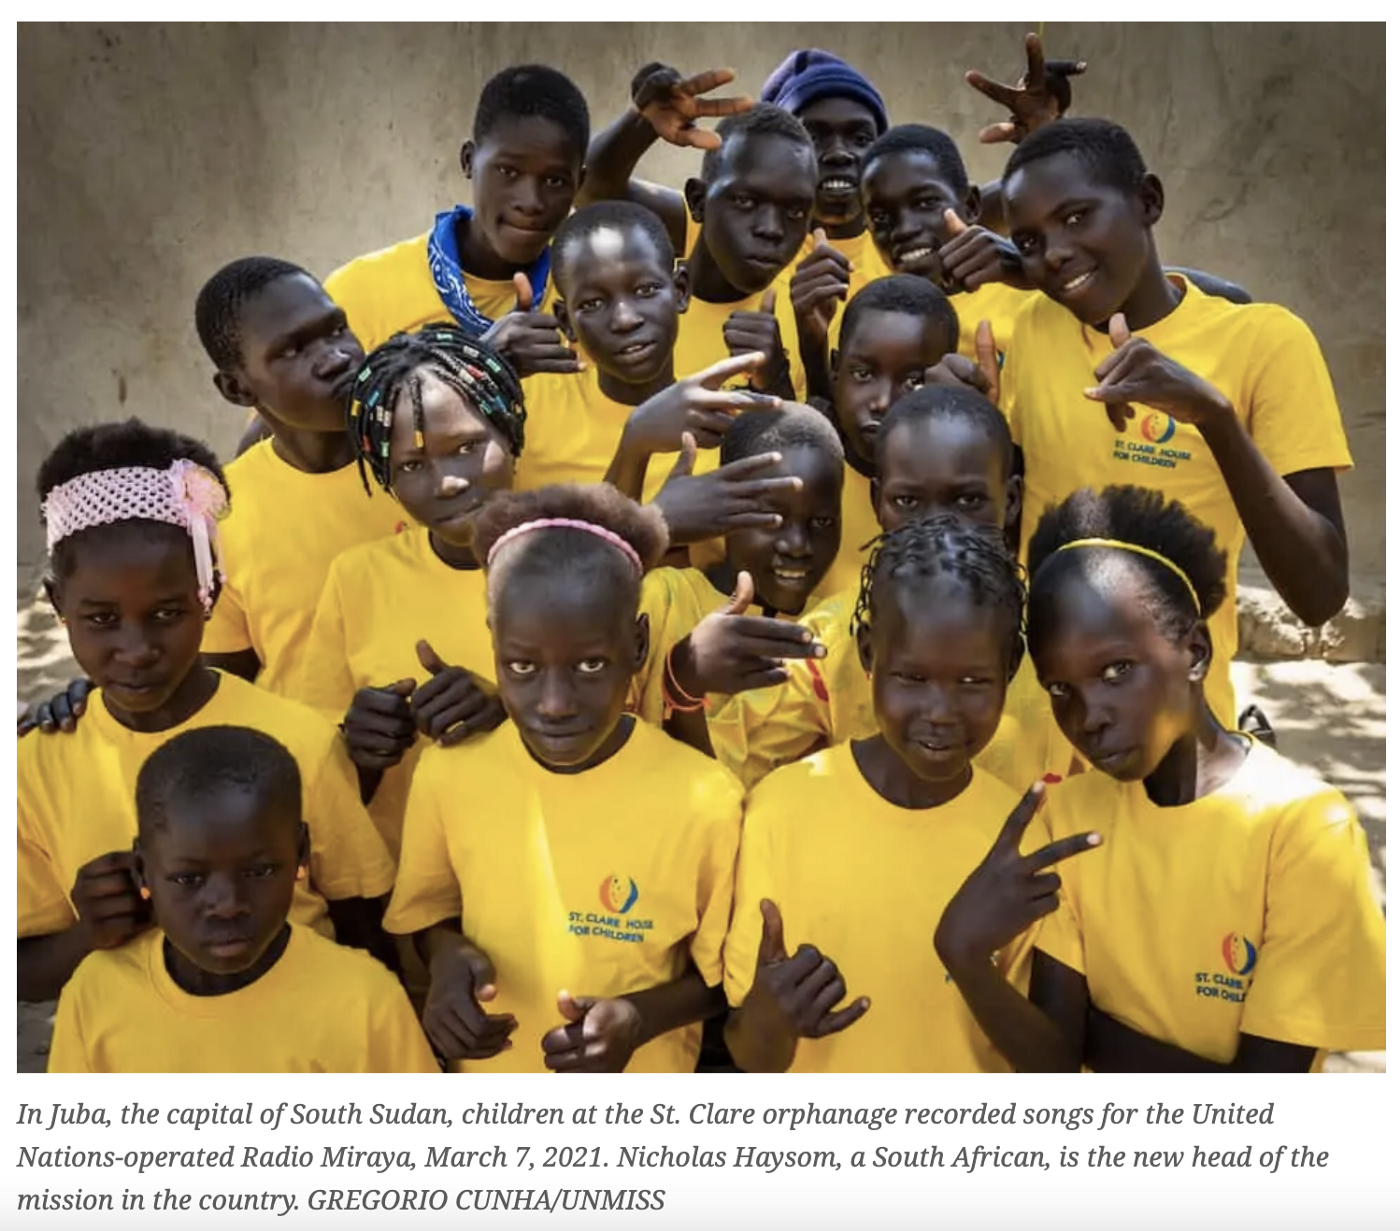 Children of the St Clare Orphanage in Juba, South Sudan